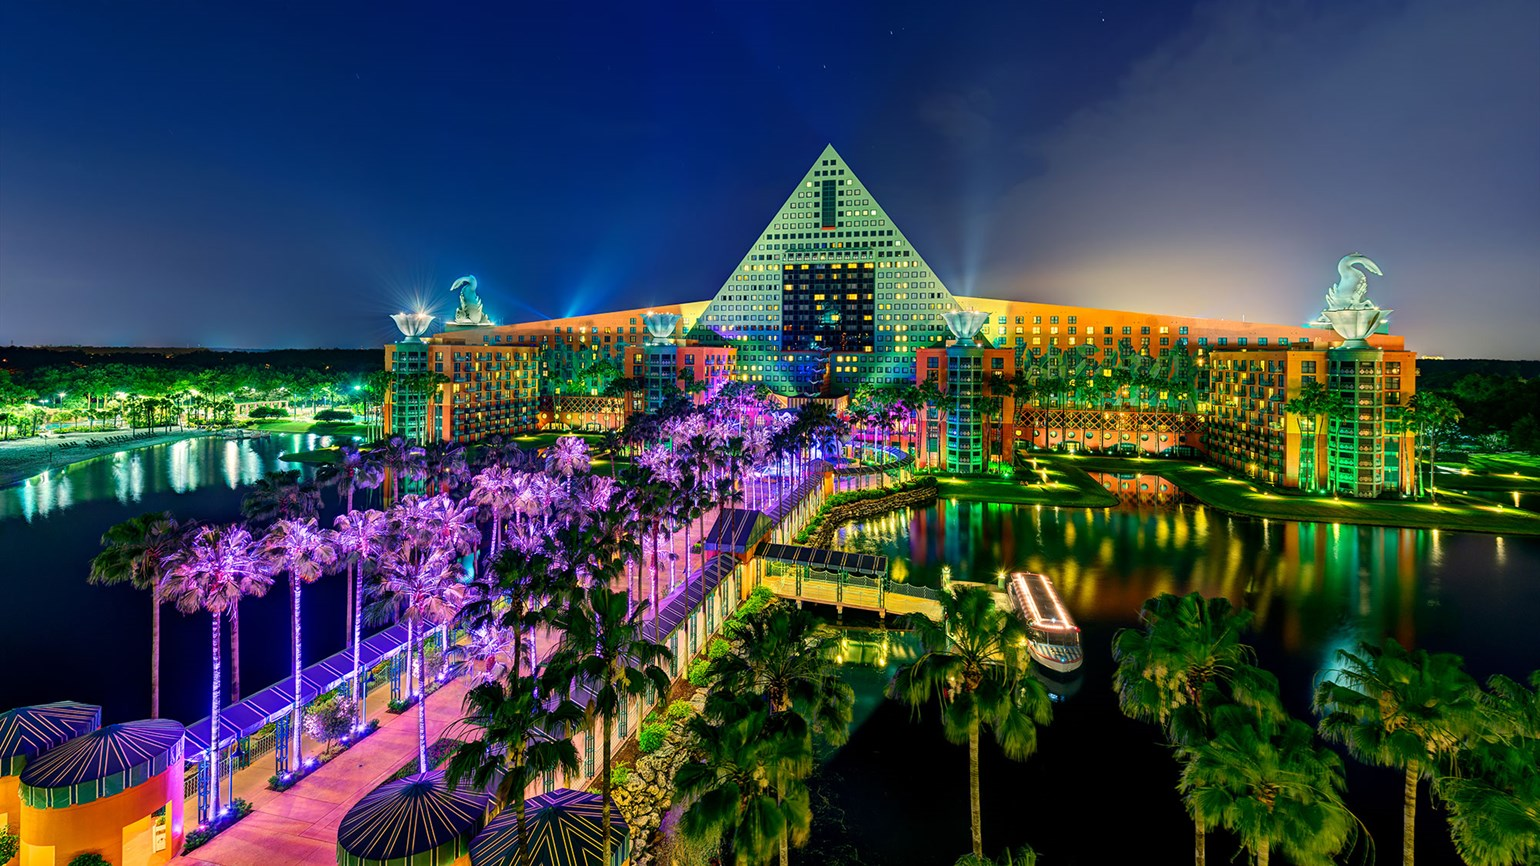 Disney World's Swan and Dolphin Resort to reopen July 29